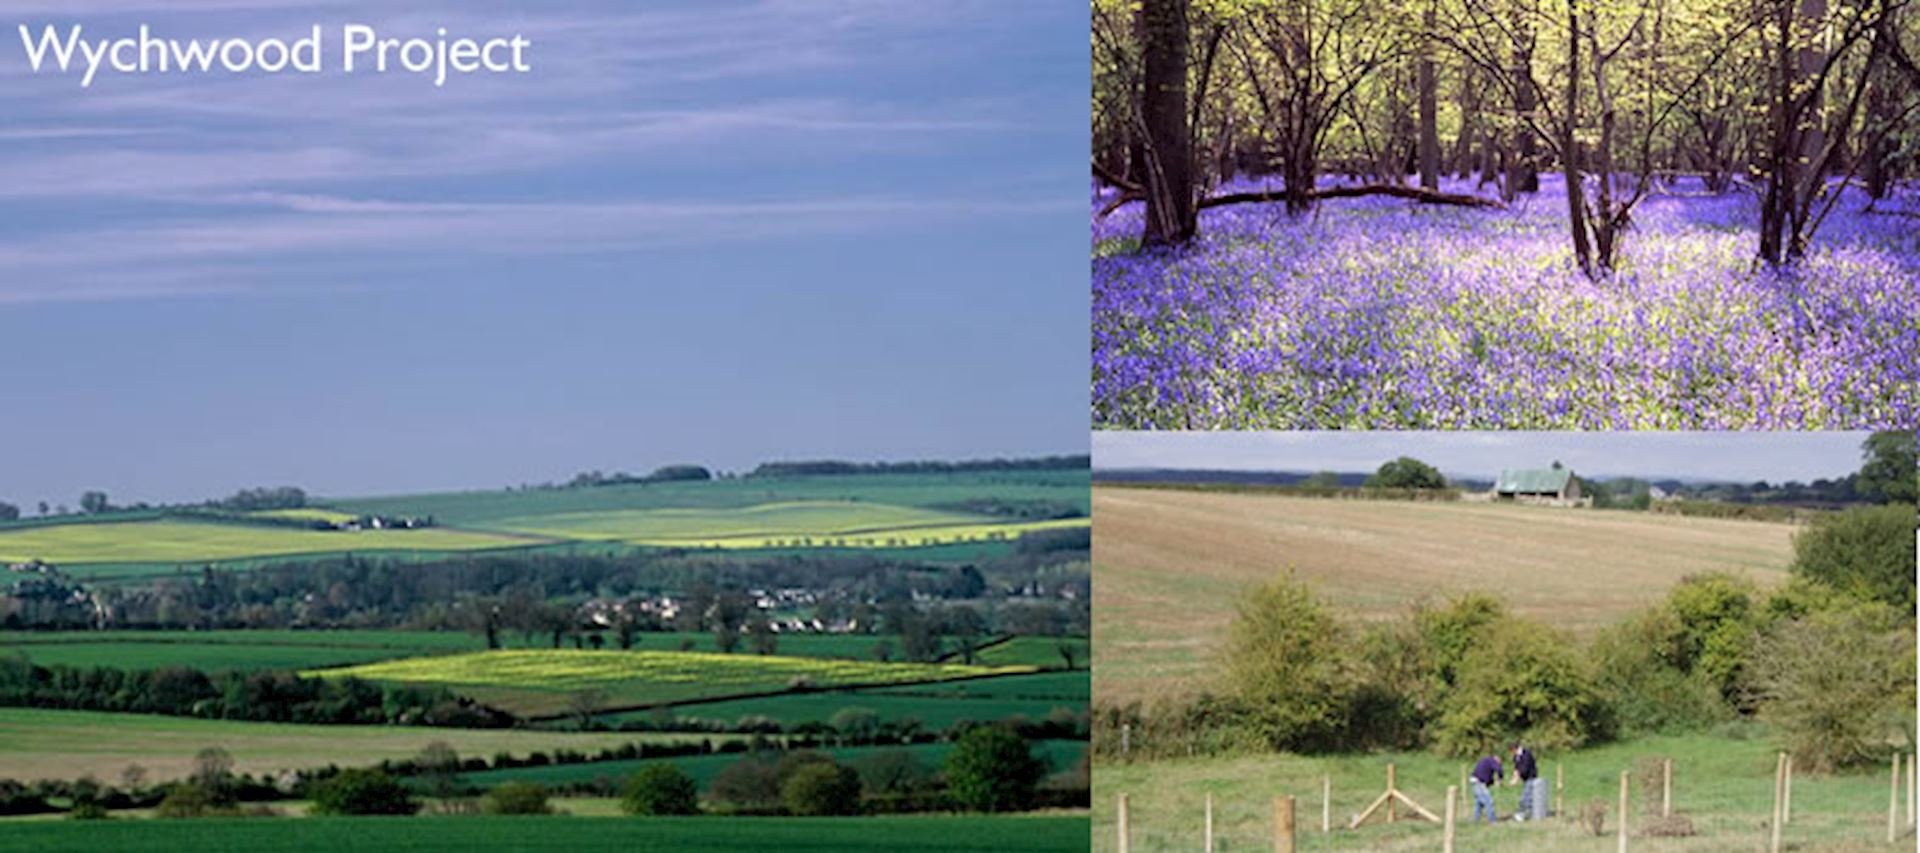 The Wychwood Project aims to enhance the environmental, cultural and historical features of Oxfordshire's landscape